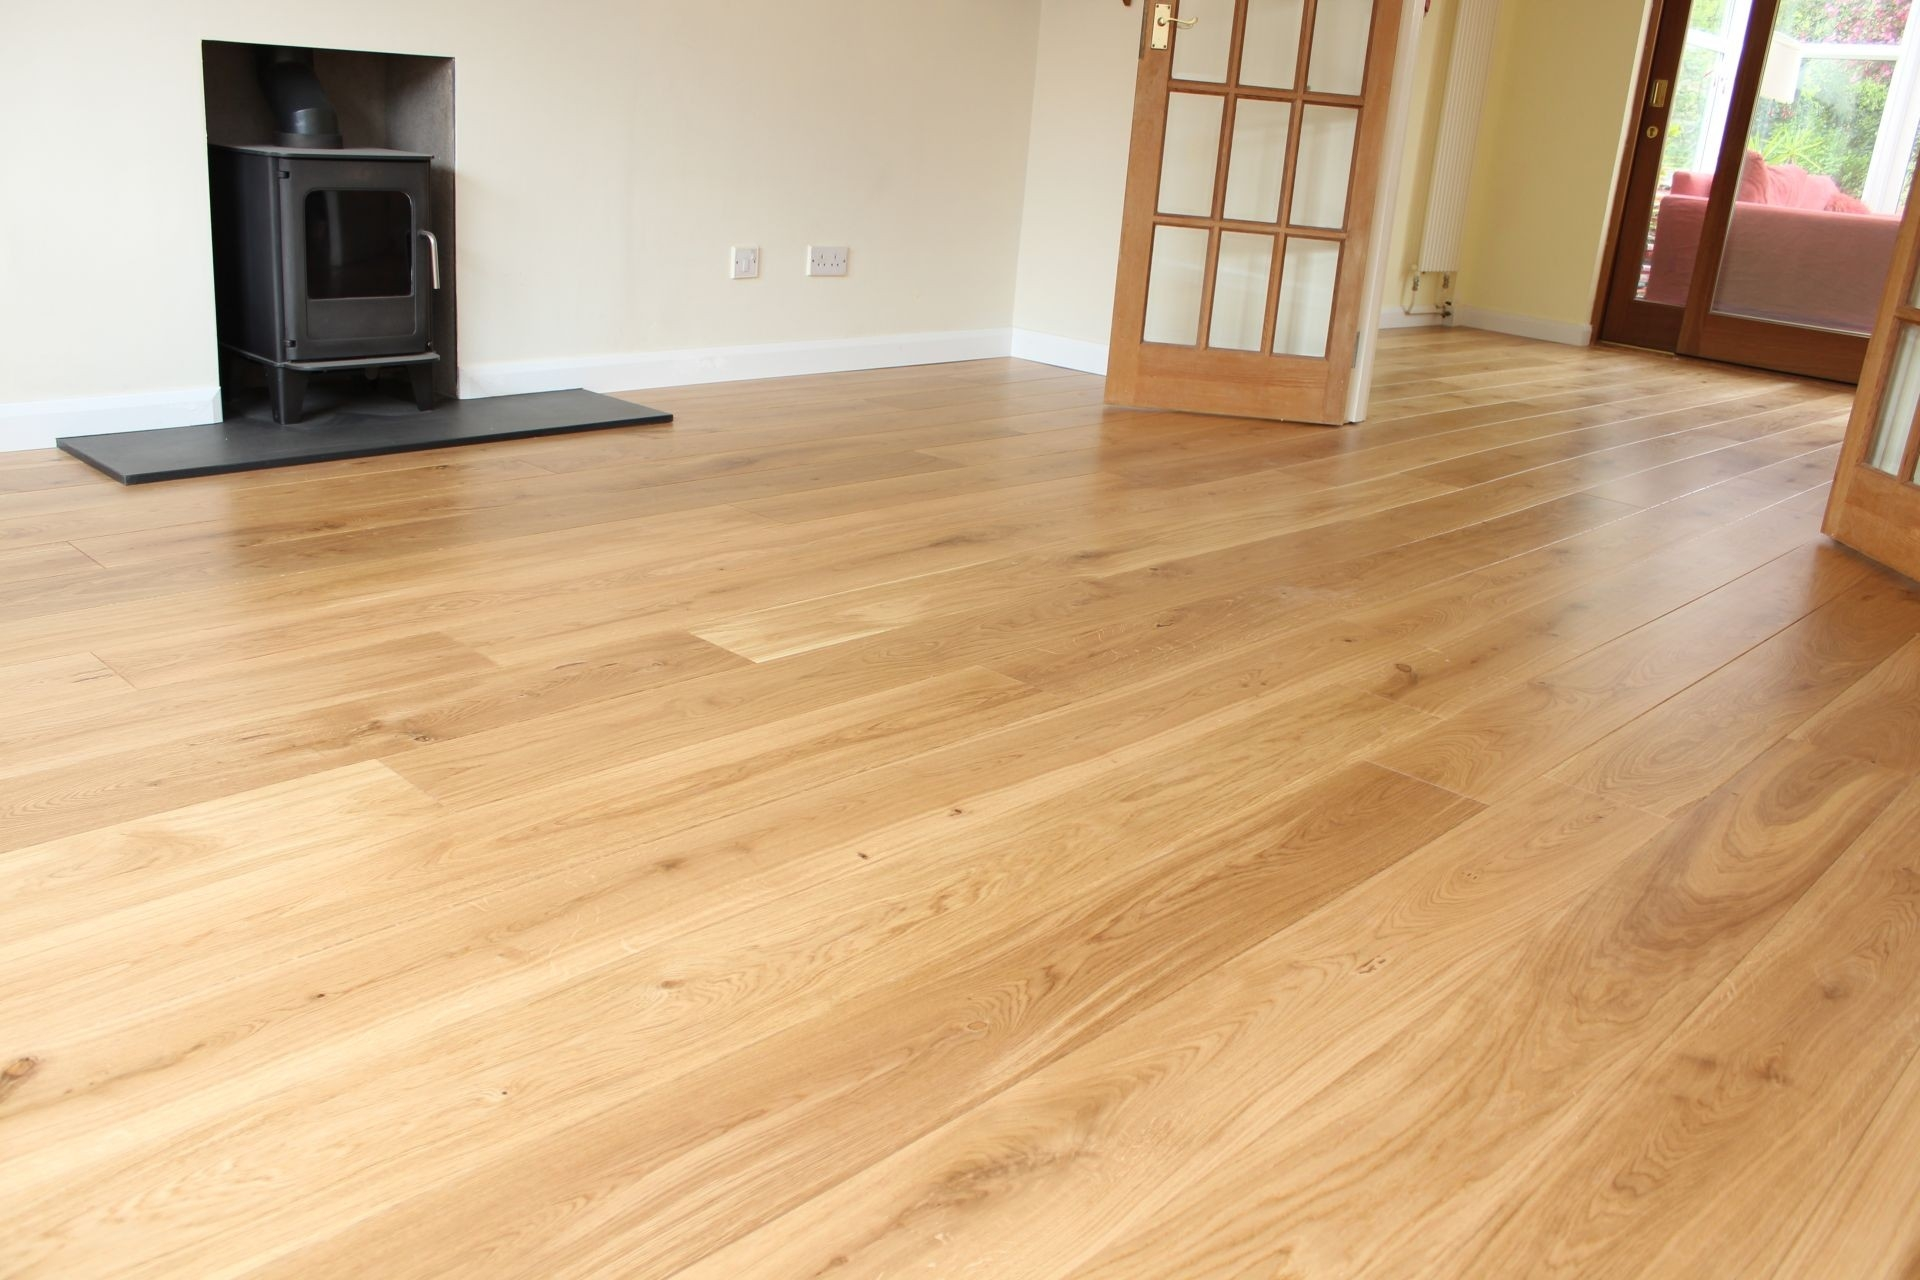 Solid Wood Floor Lacquer